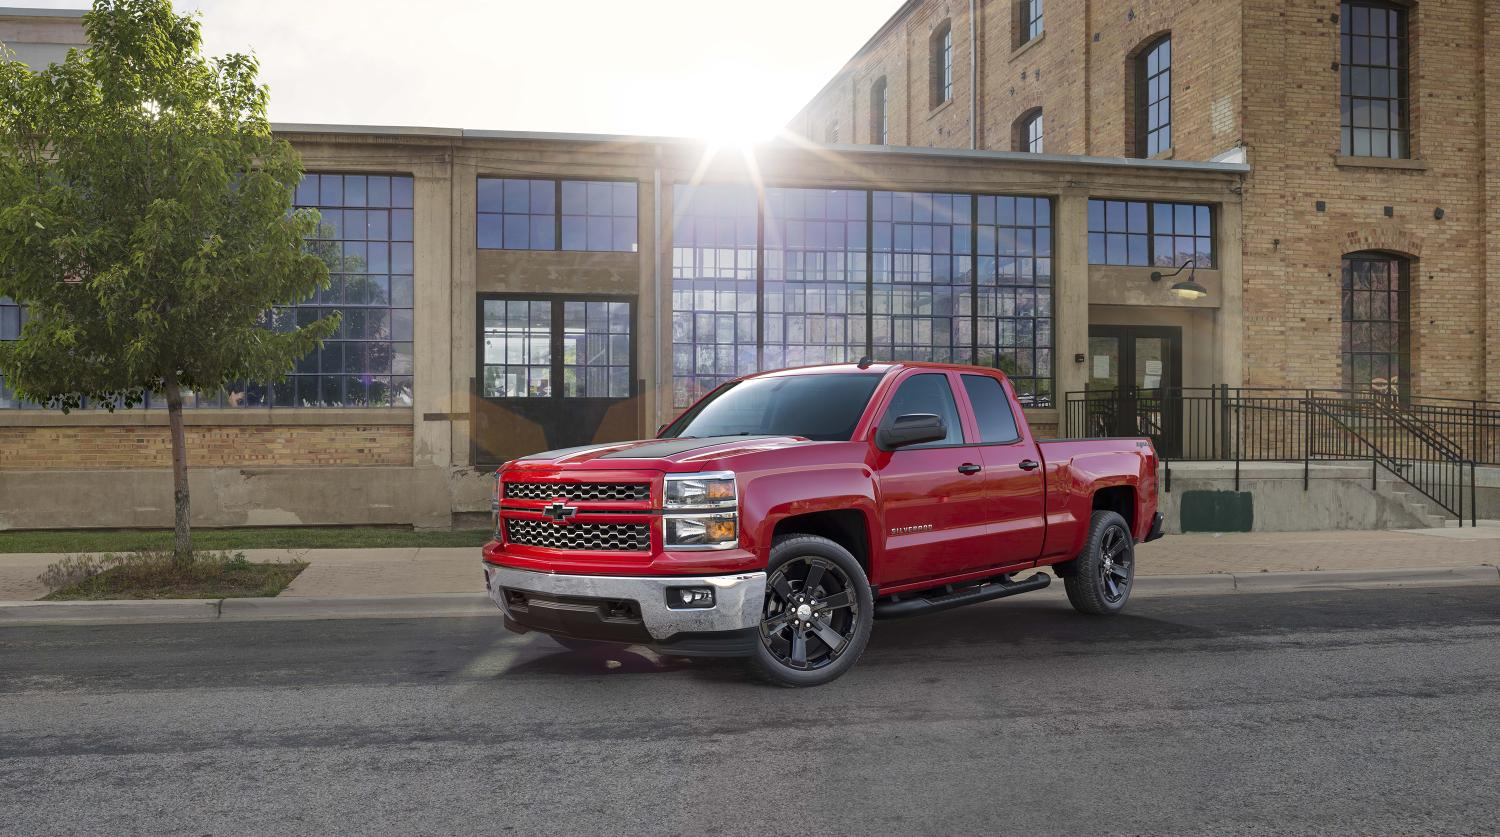 2015 Chevrolet Silverado 1500 Rally Editions Look ...